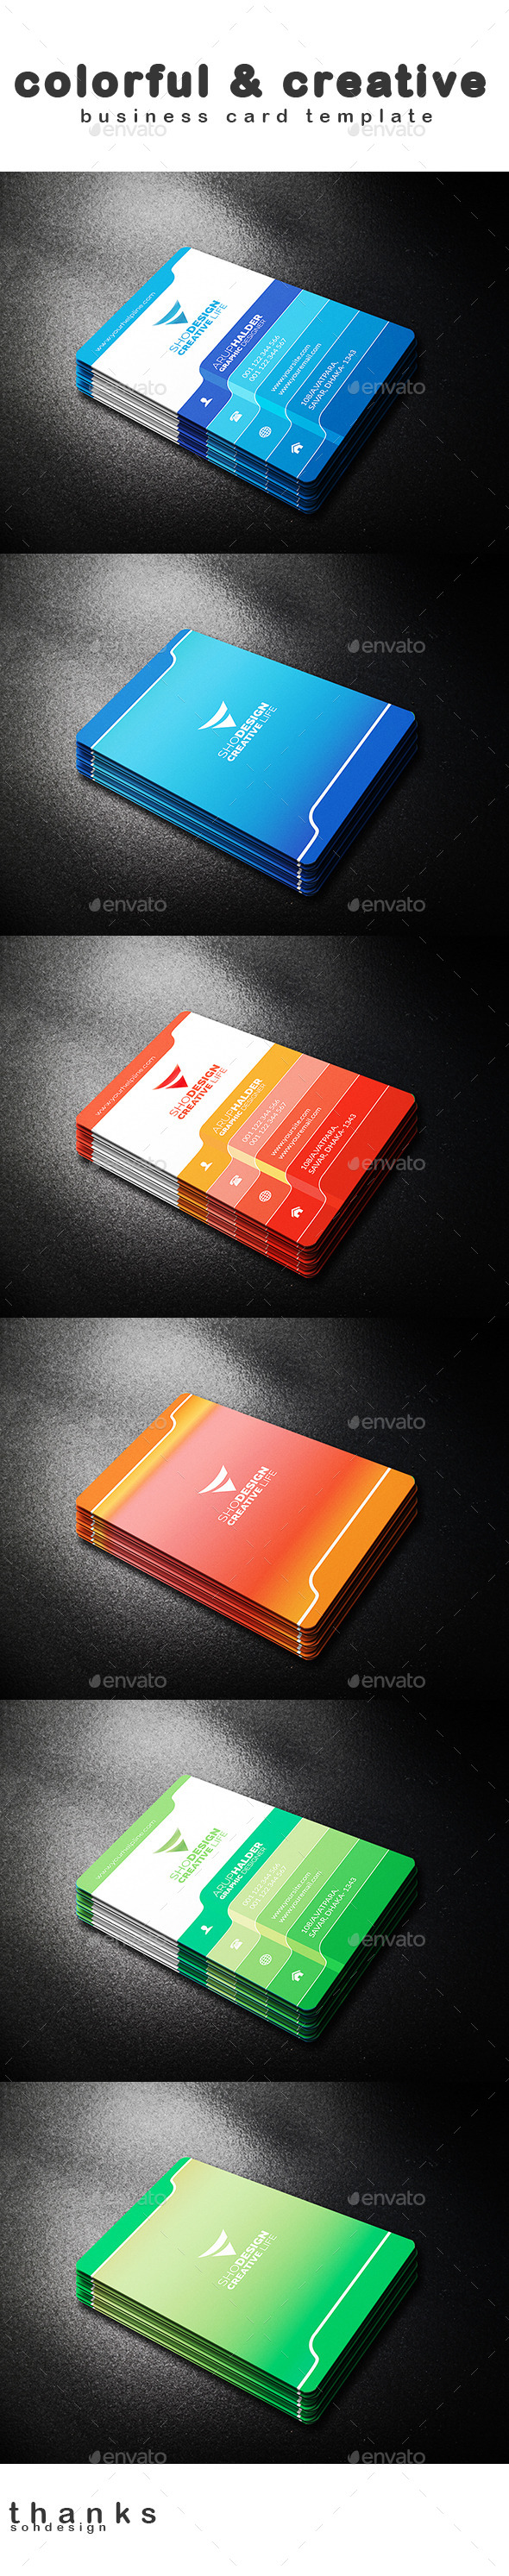 GraphicRiver Colorful & Creative Business Card Template 3 11261164